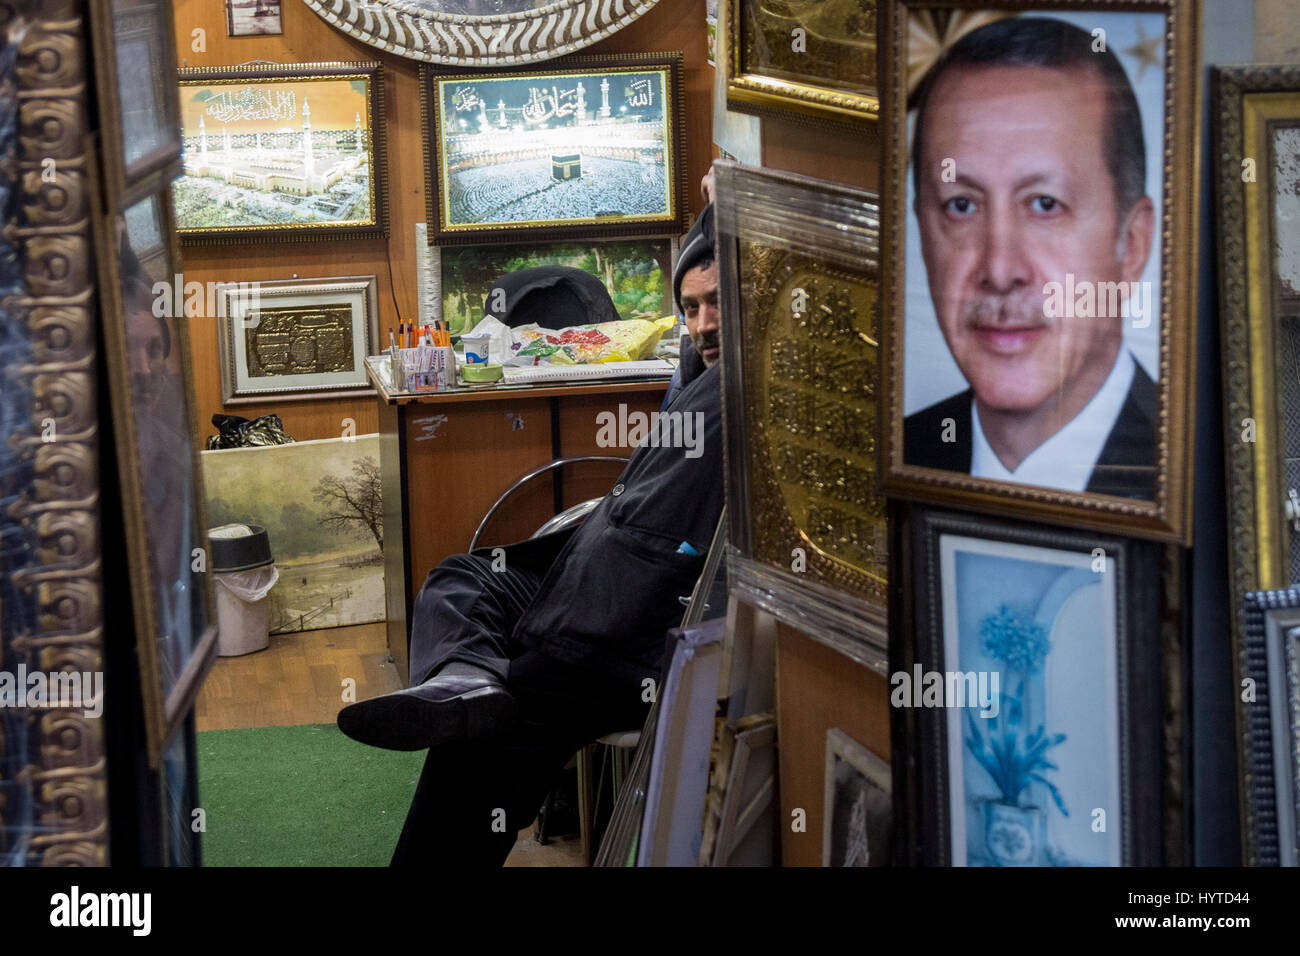 ISTANBUL, TURKEY - DECEMBER 29, 2015: Shopkeeper selling a huge portrait of the Turkish President, Recep Tayyip - Stock Image